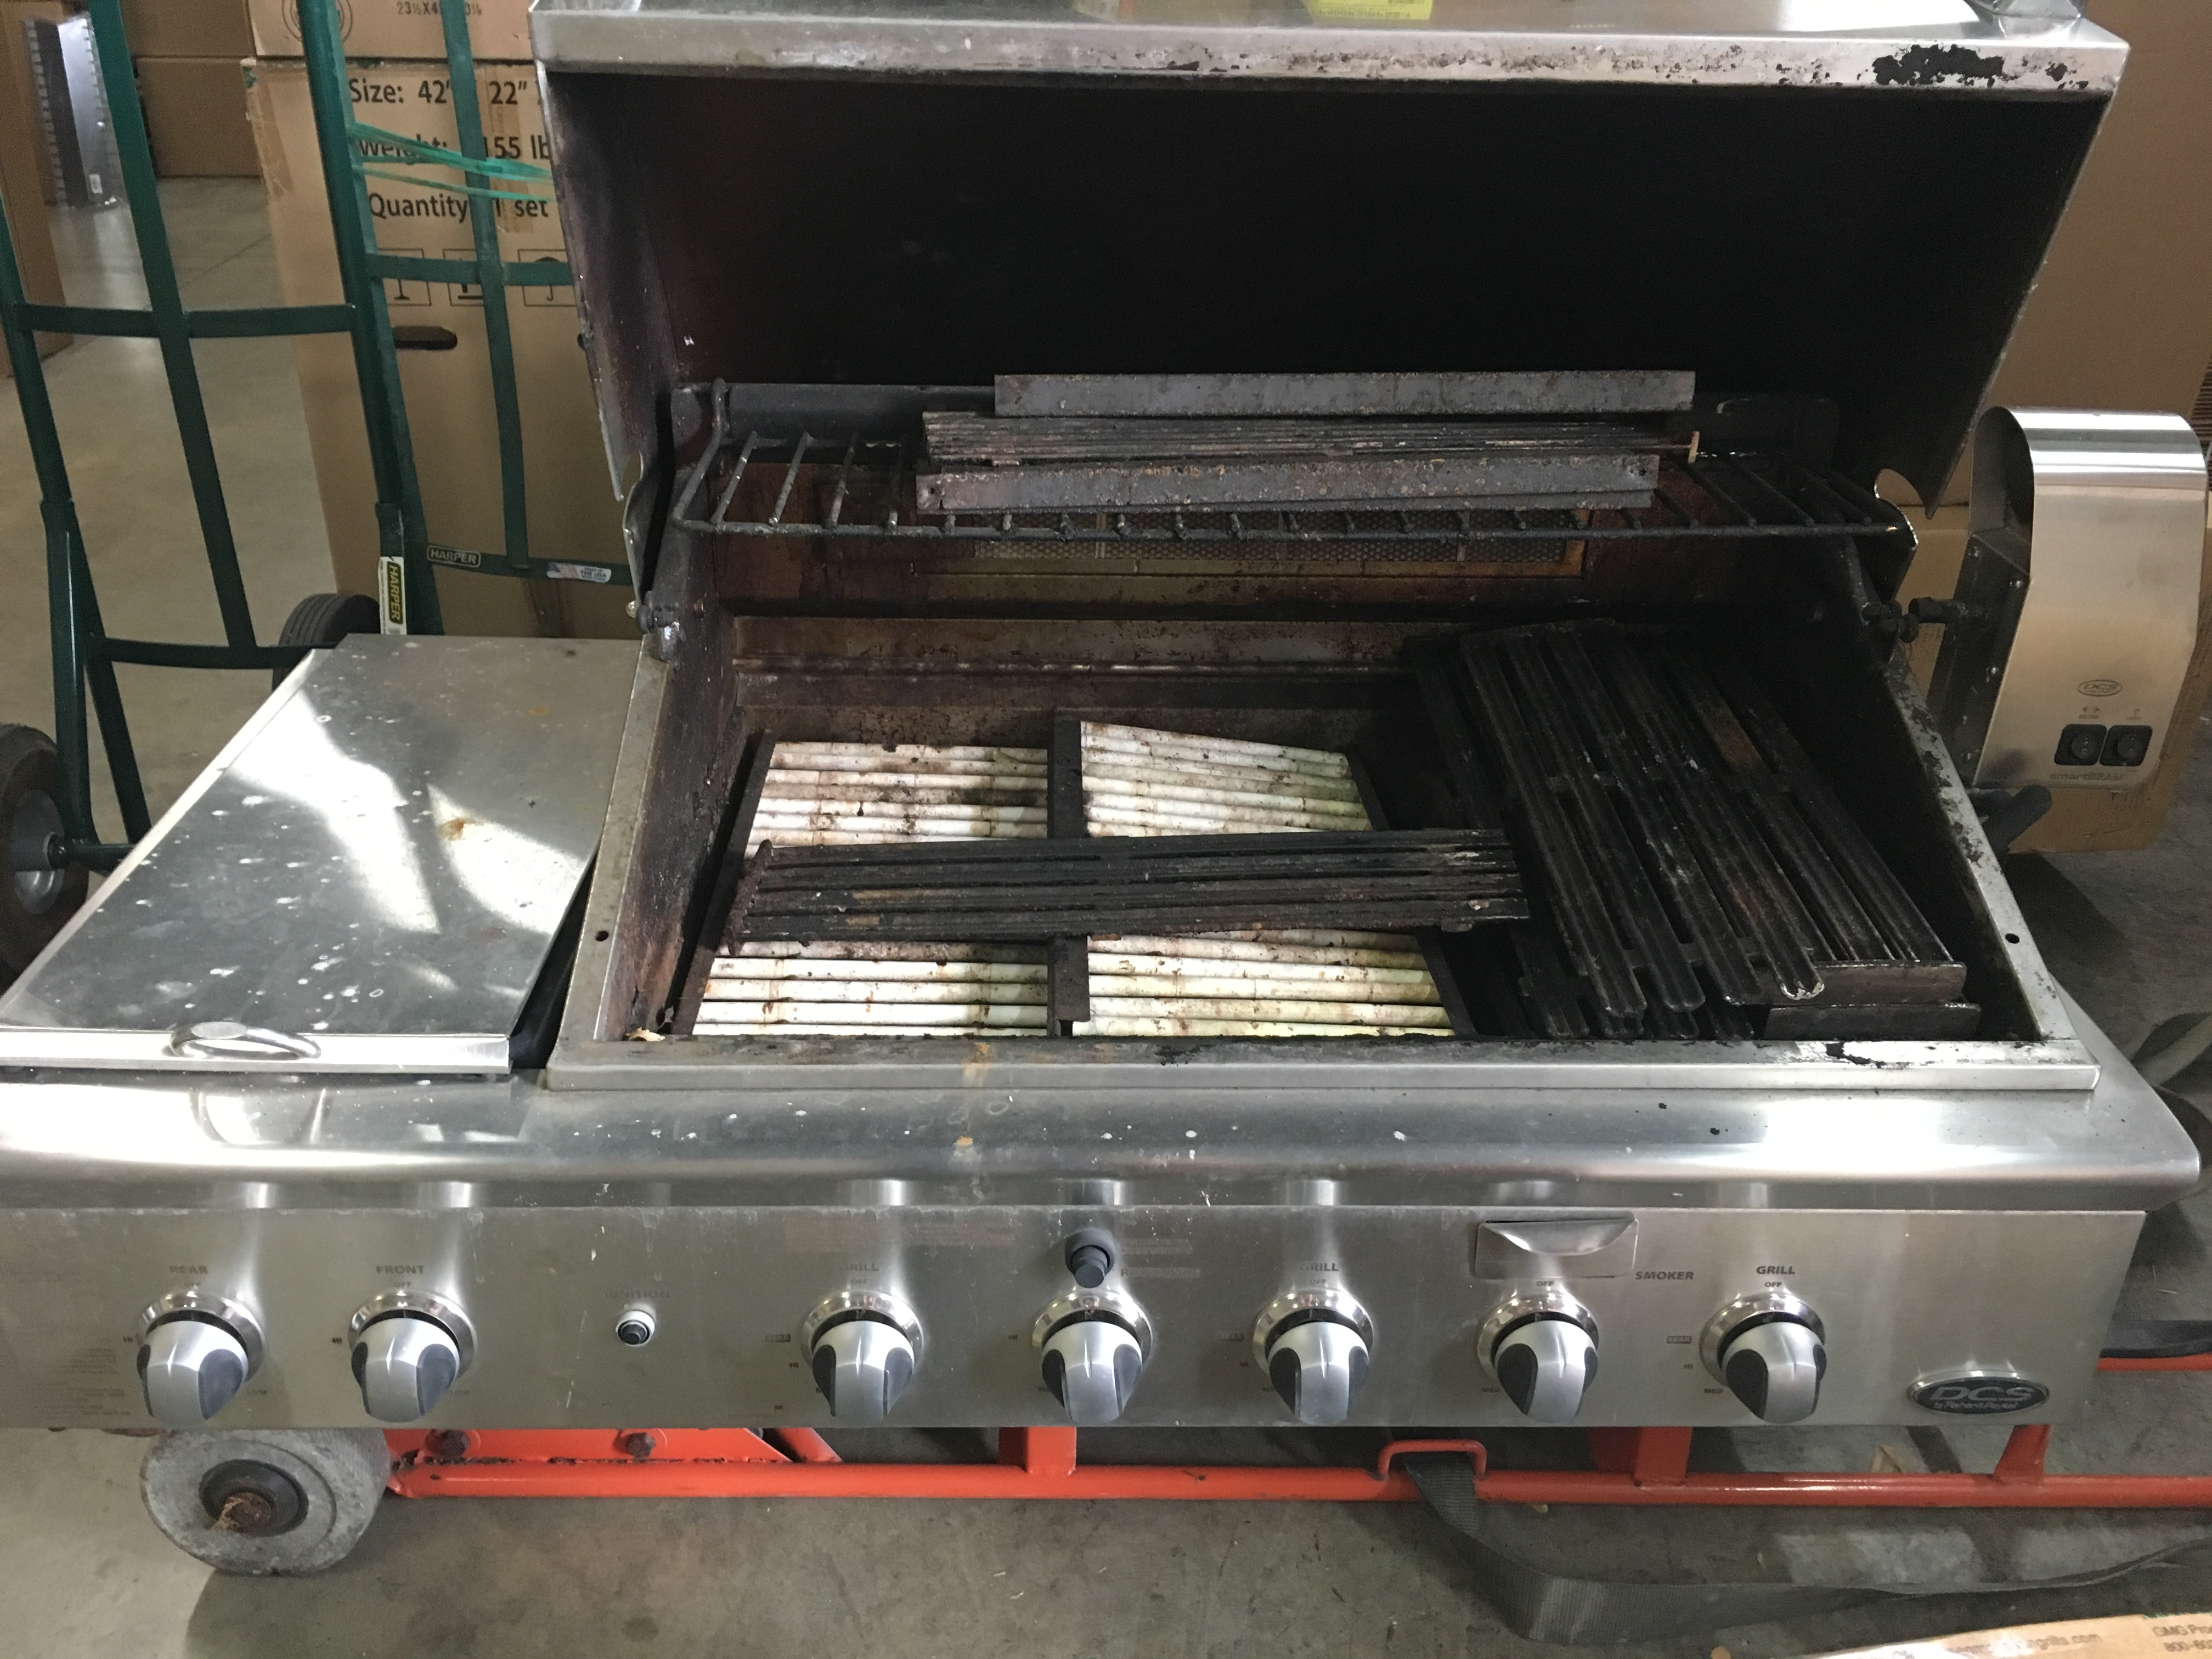 Cleaning And Replacing Burners Ceramic Rod Trays And